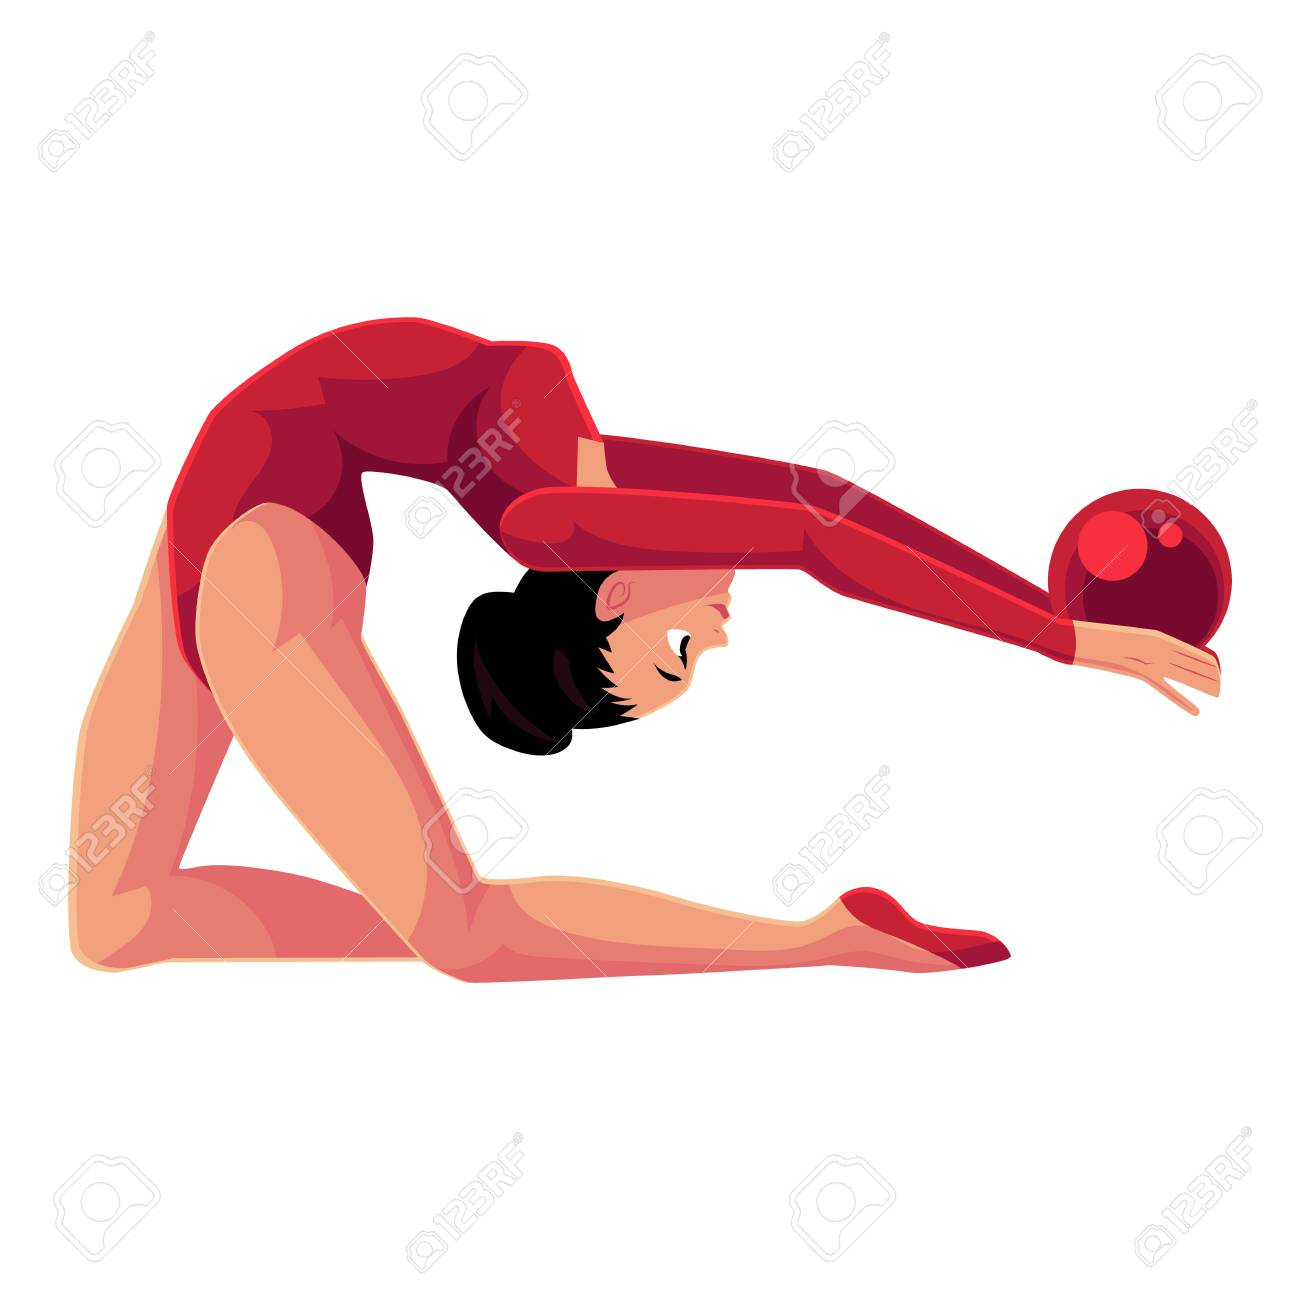 Cartoon Female Gymnast Performs The Splits Royalty Free Cliparts, Vectors,  And Stock Illustration. Image 70226510.